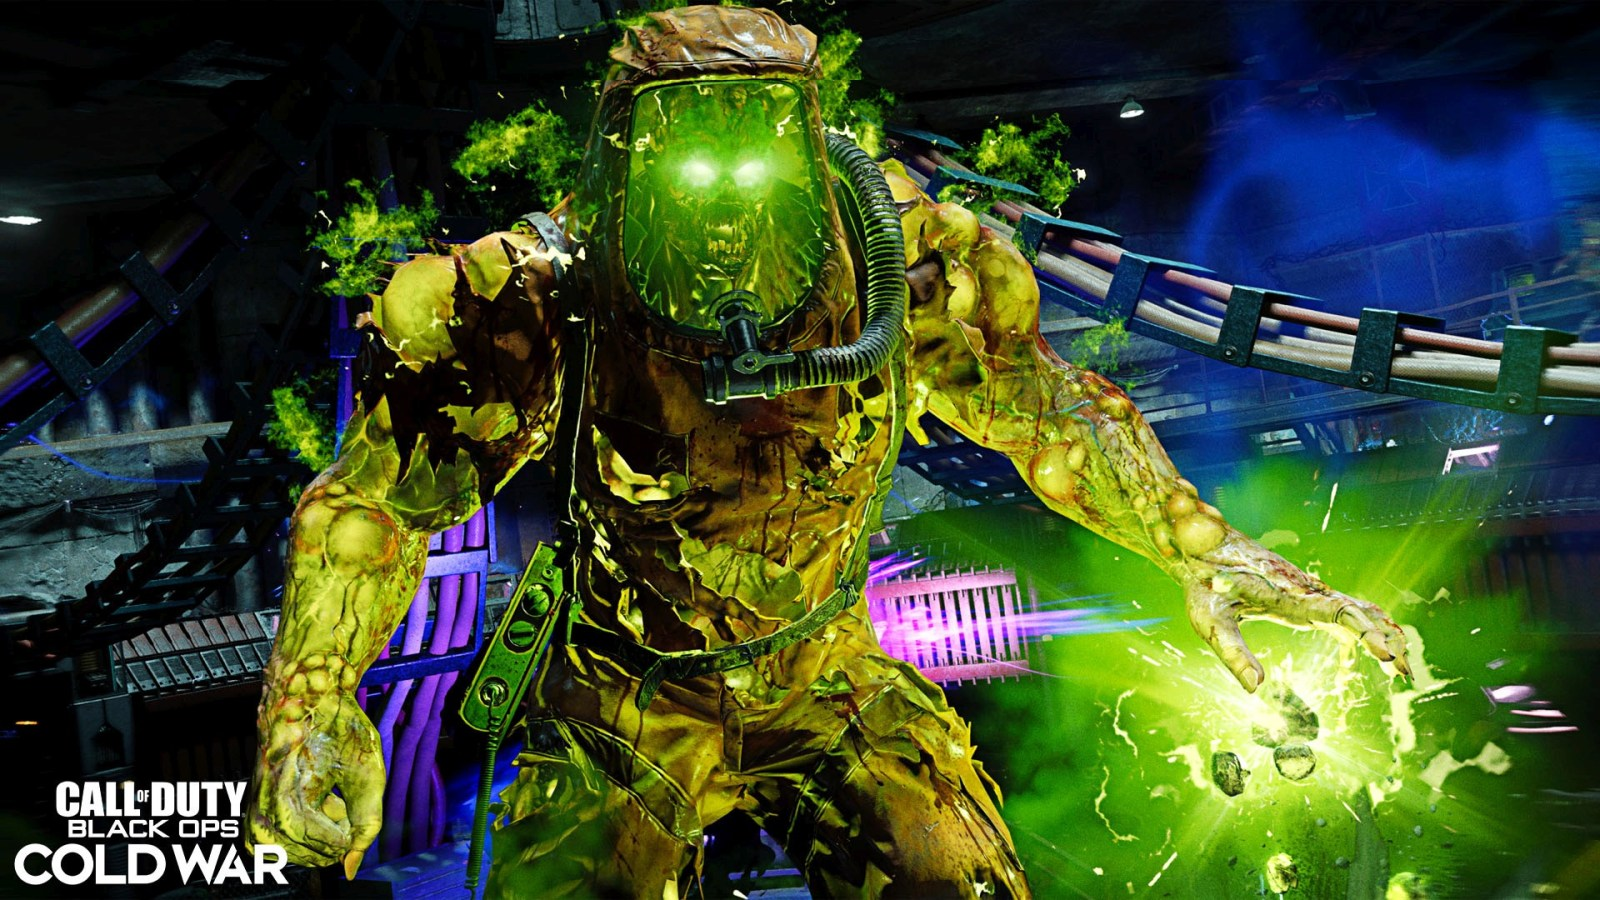 New Treyarch's legendary Zombies mode will be available in Call of Duty Cold War for free during Zombies Free Access Week